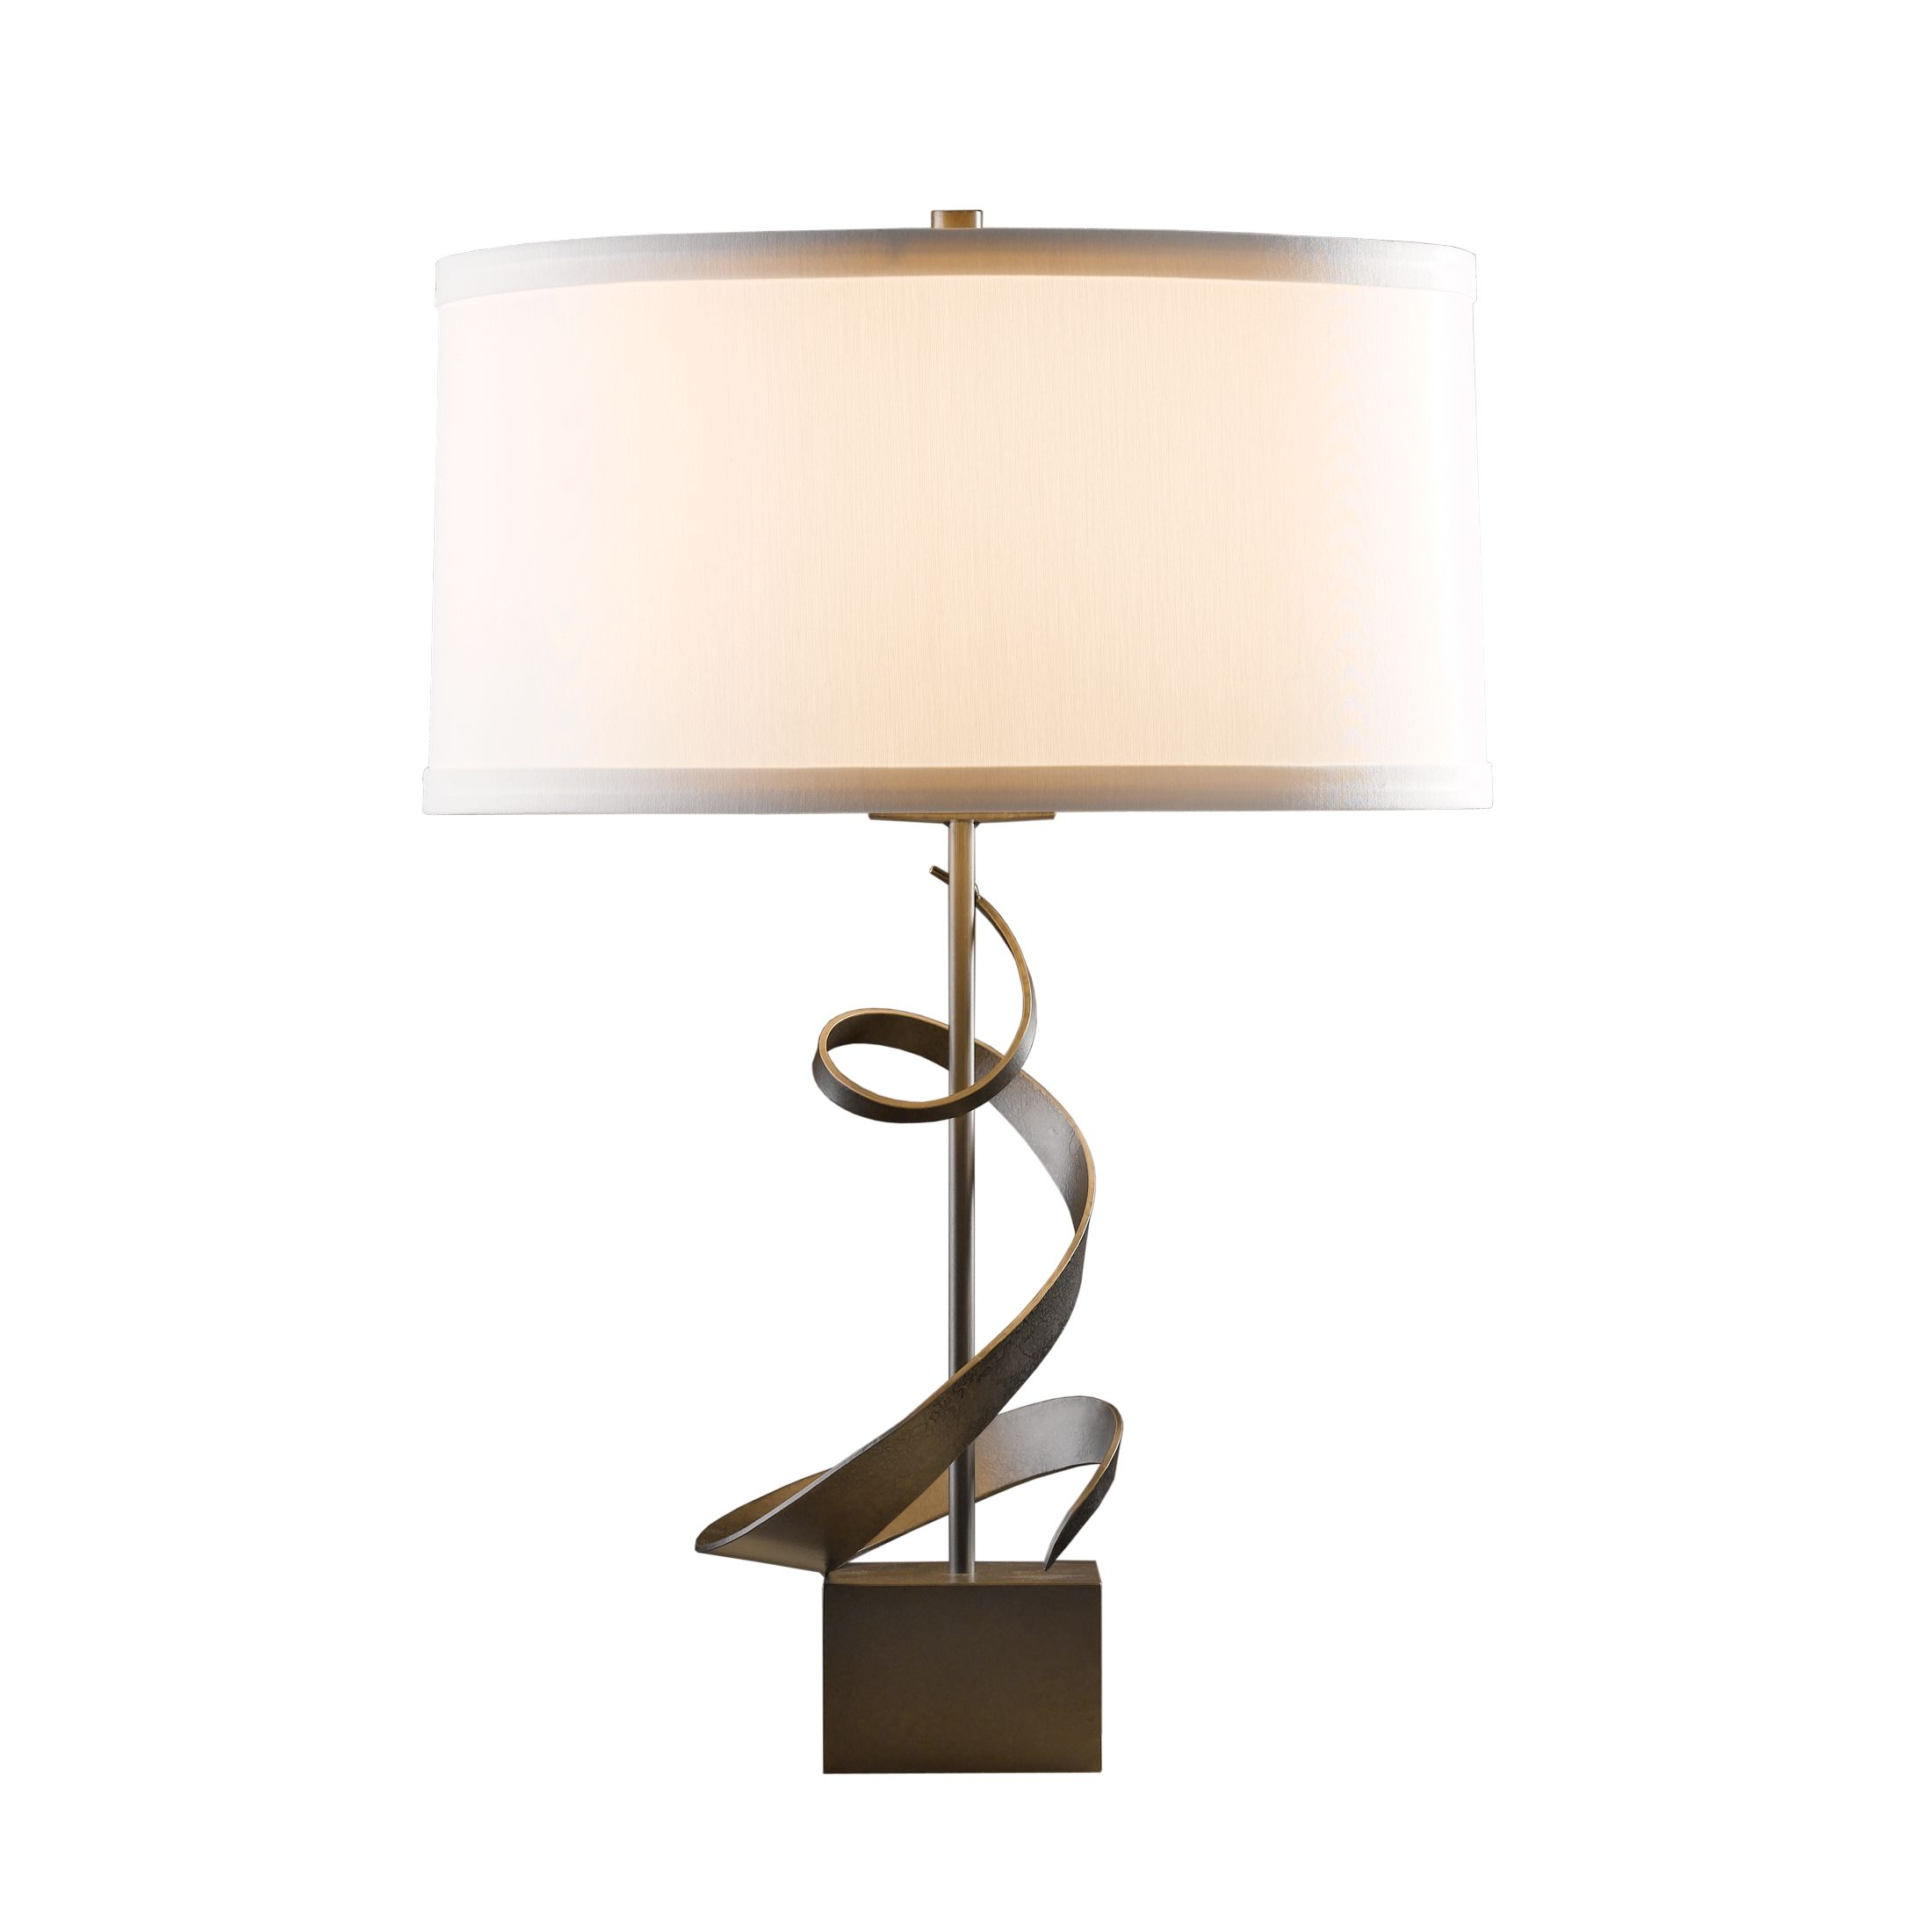 Gallery Spiral Table Lamp Hubbardton Forge